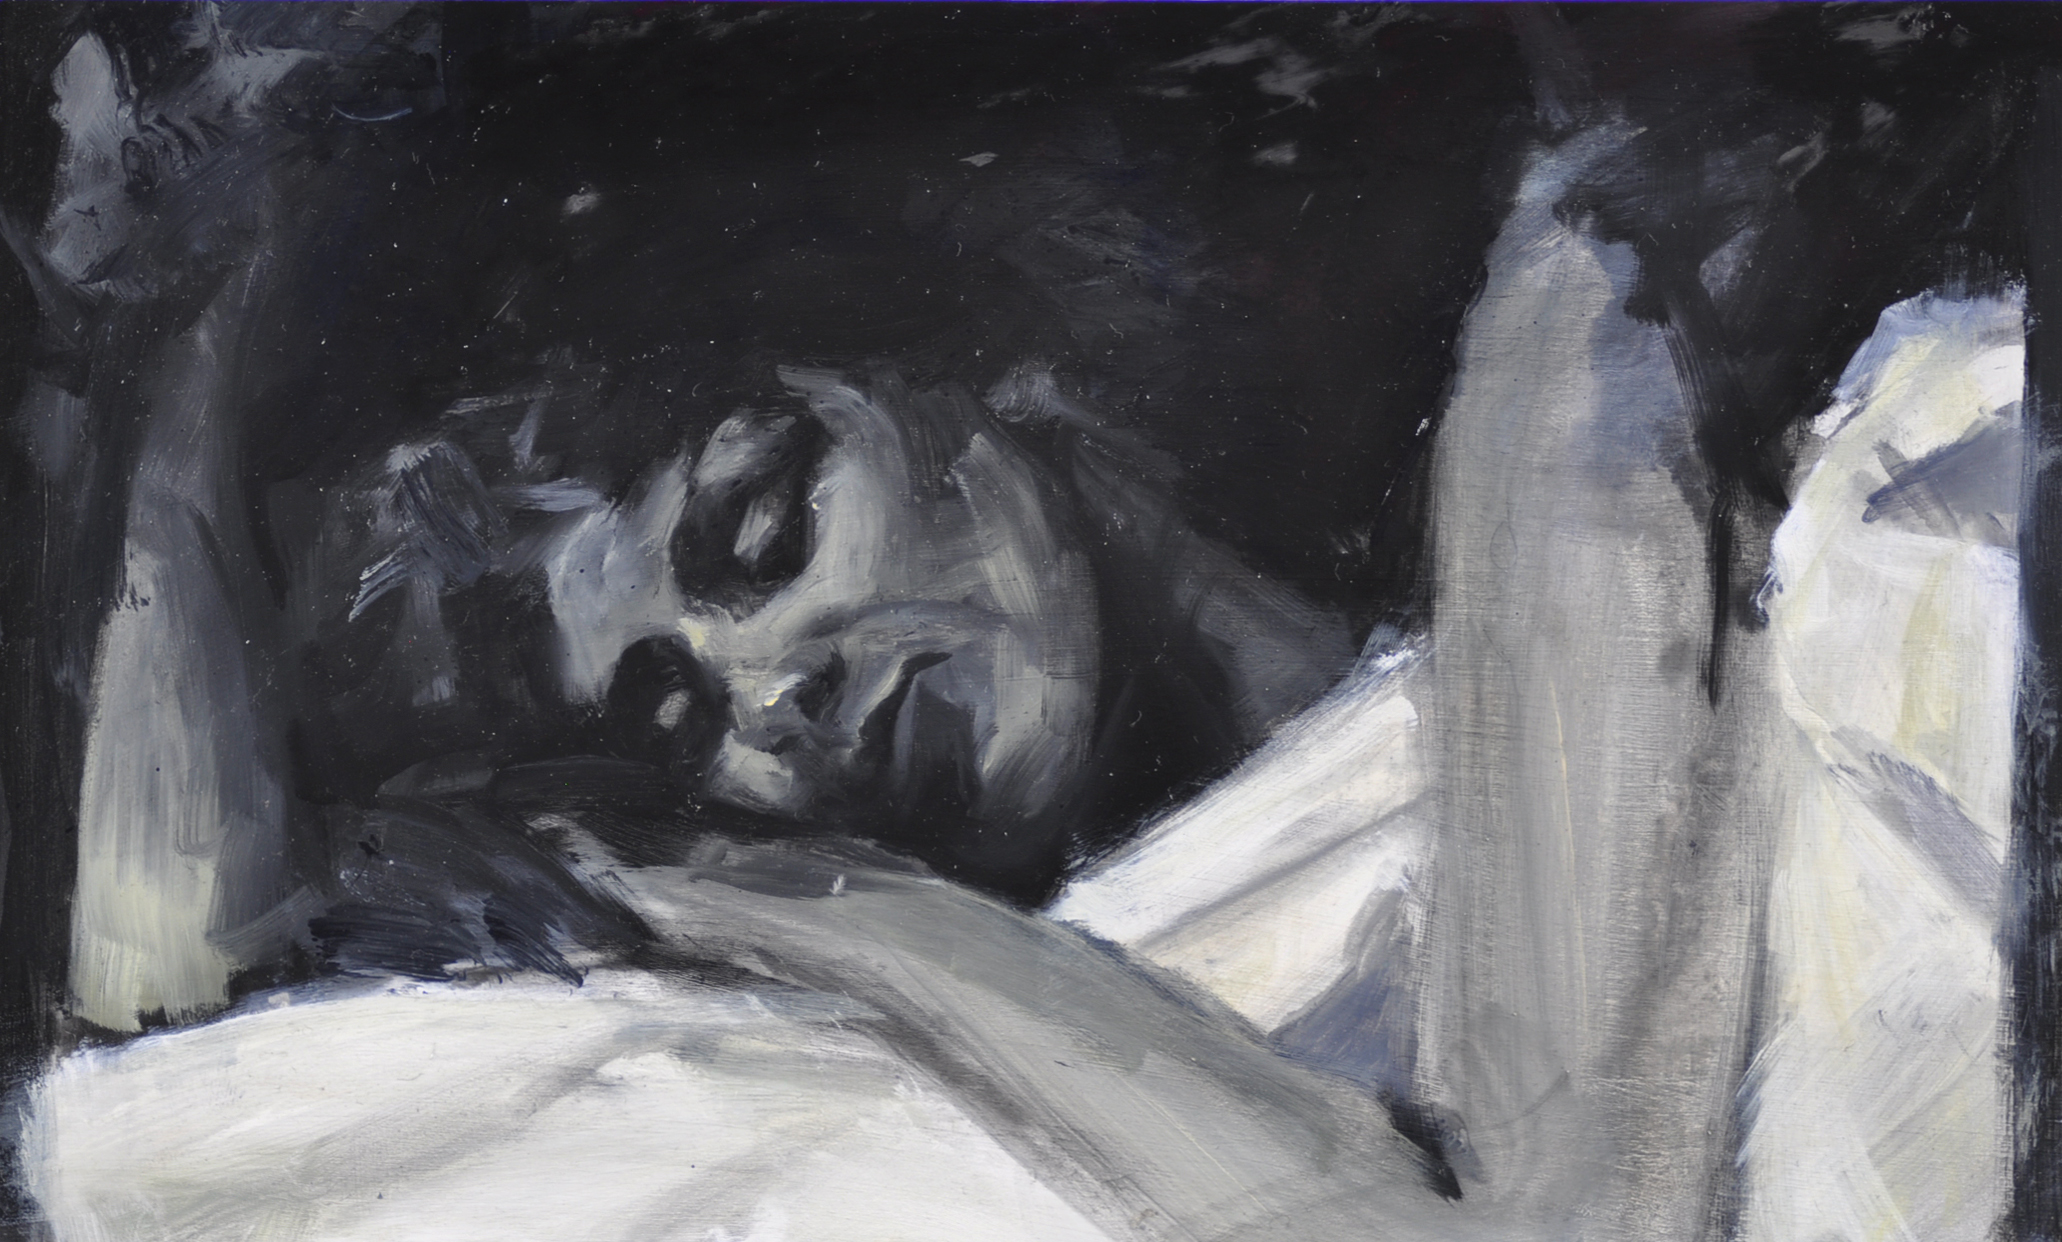 Out of Dreams No. 1 , 2012, oil on wood panel, 12 x 21 inches